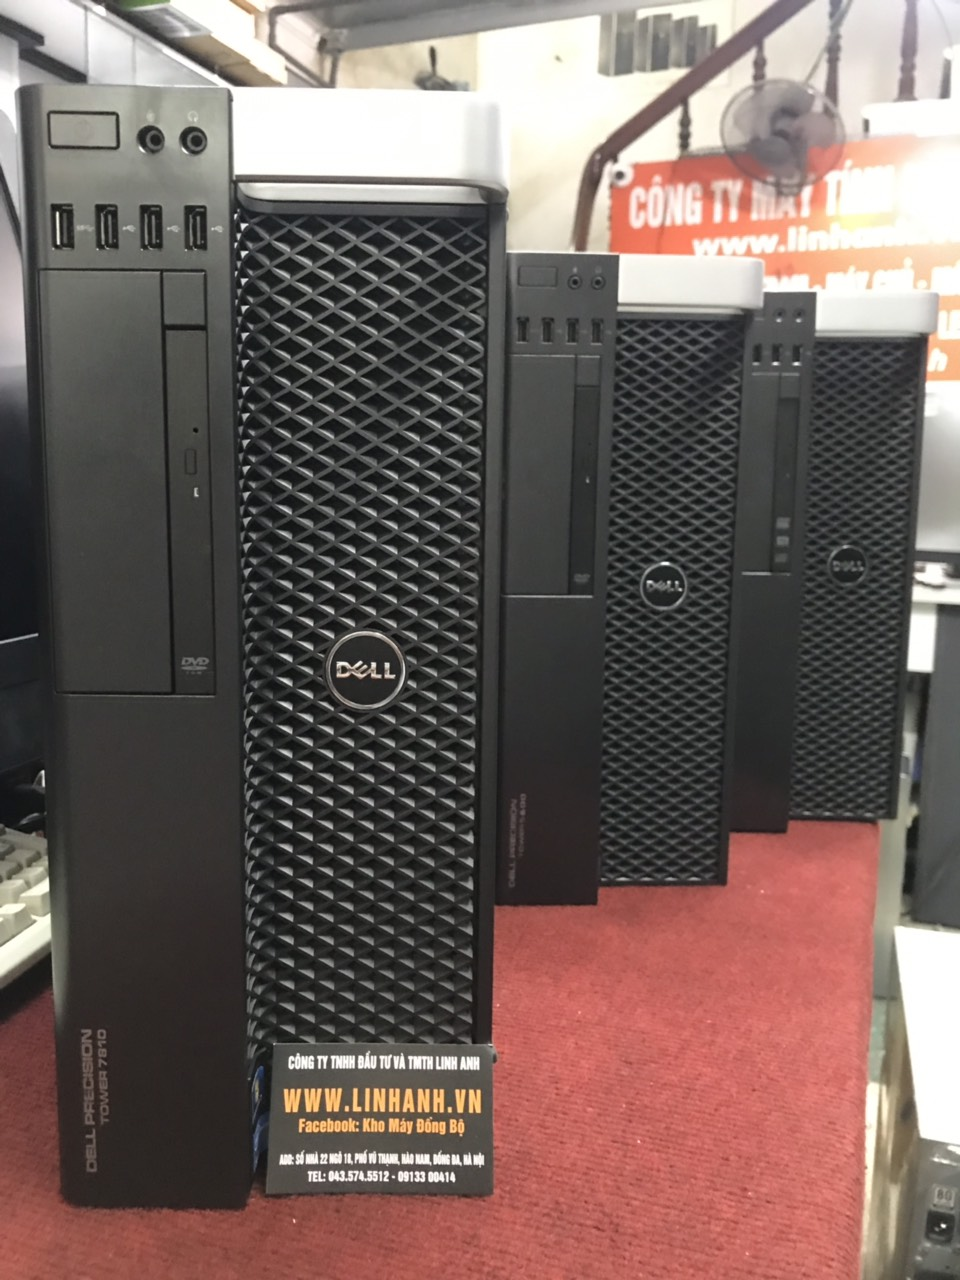 Dell Workstation T7810 (Cấu hình 1)